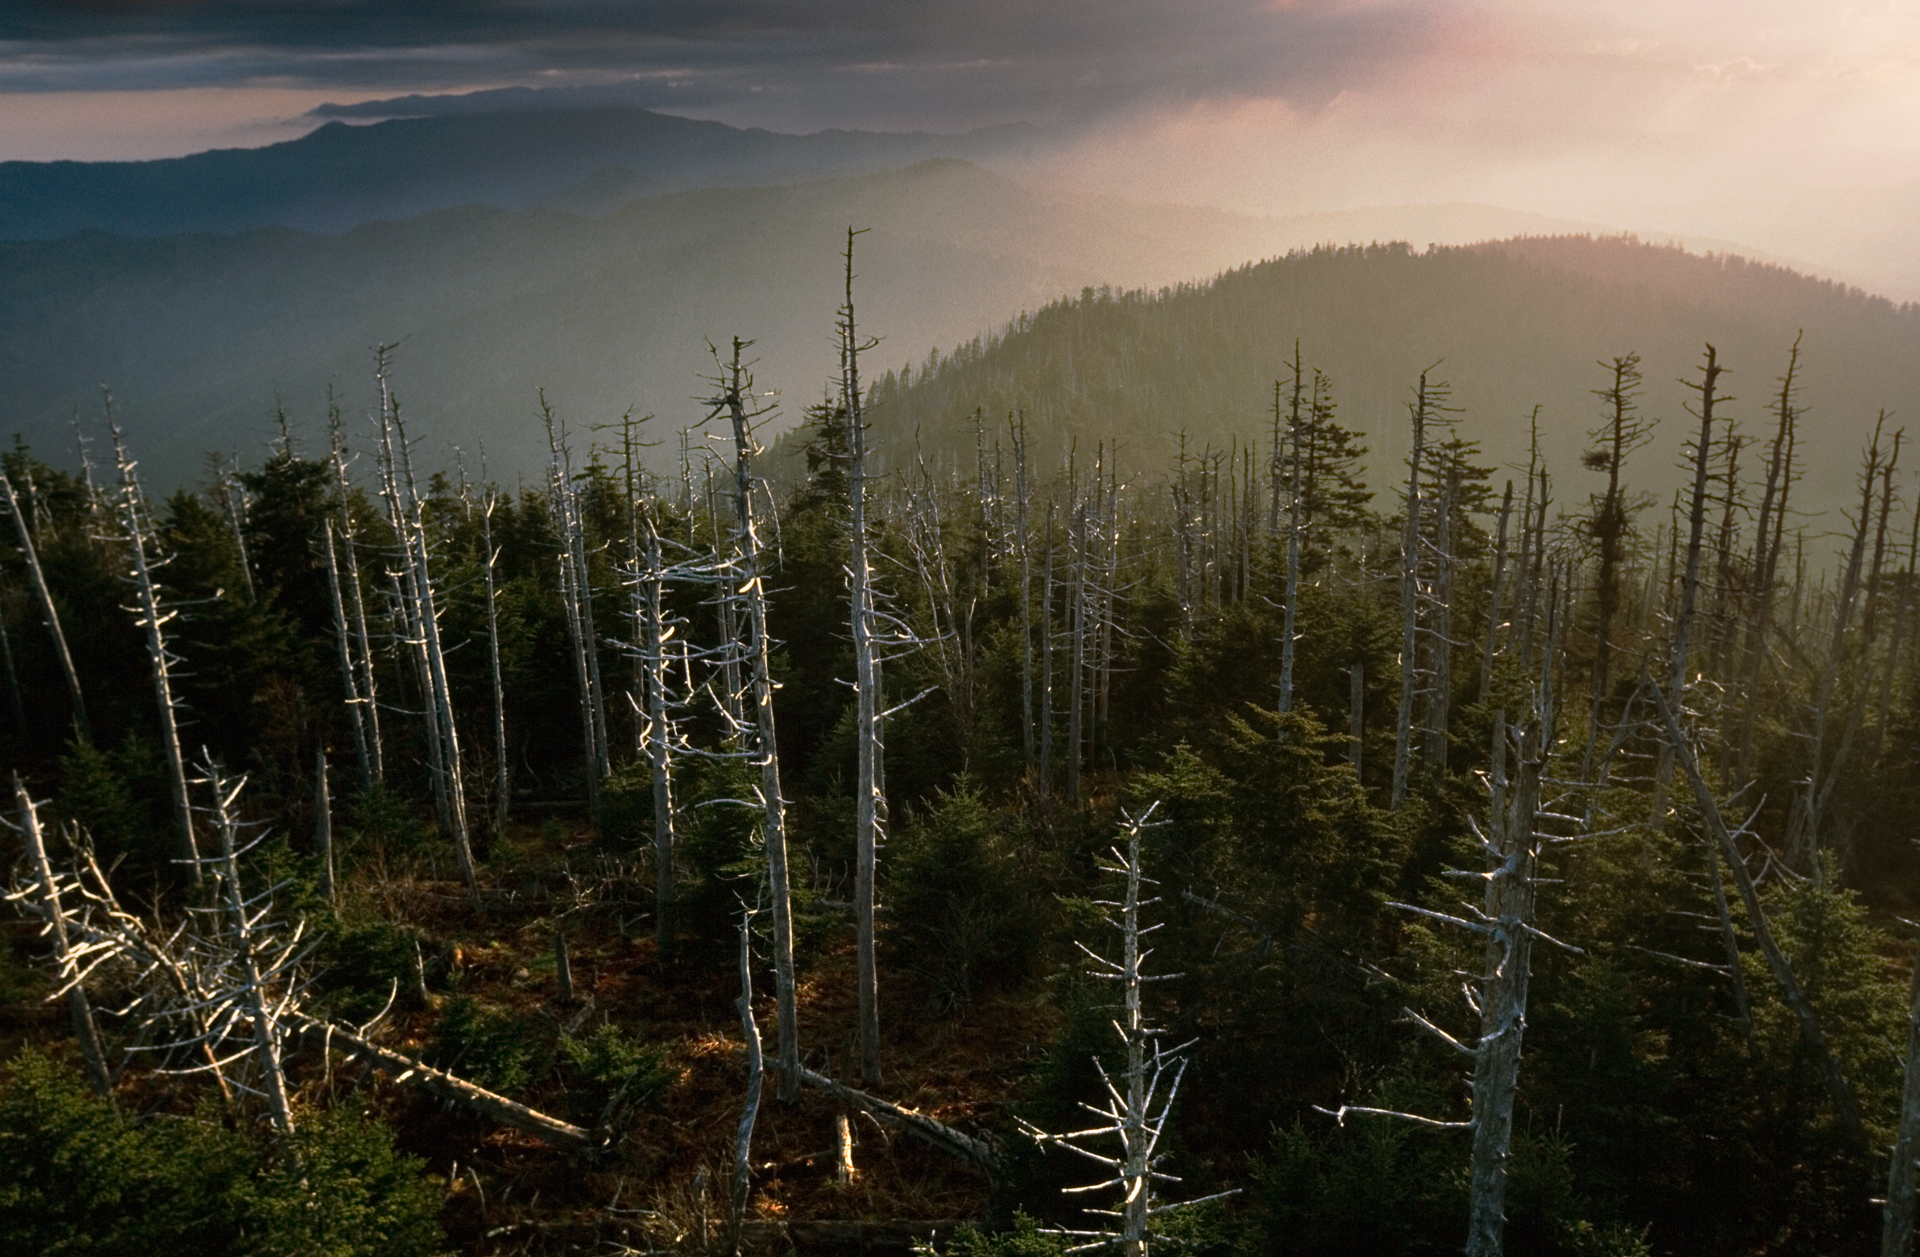 A toxic yellow haze hangs over dead trees, felled by aphid infestation brought on by the pollution.  Blue Ridge Parkway, North Carolina